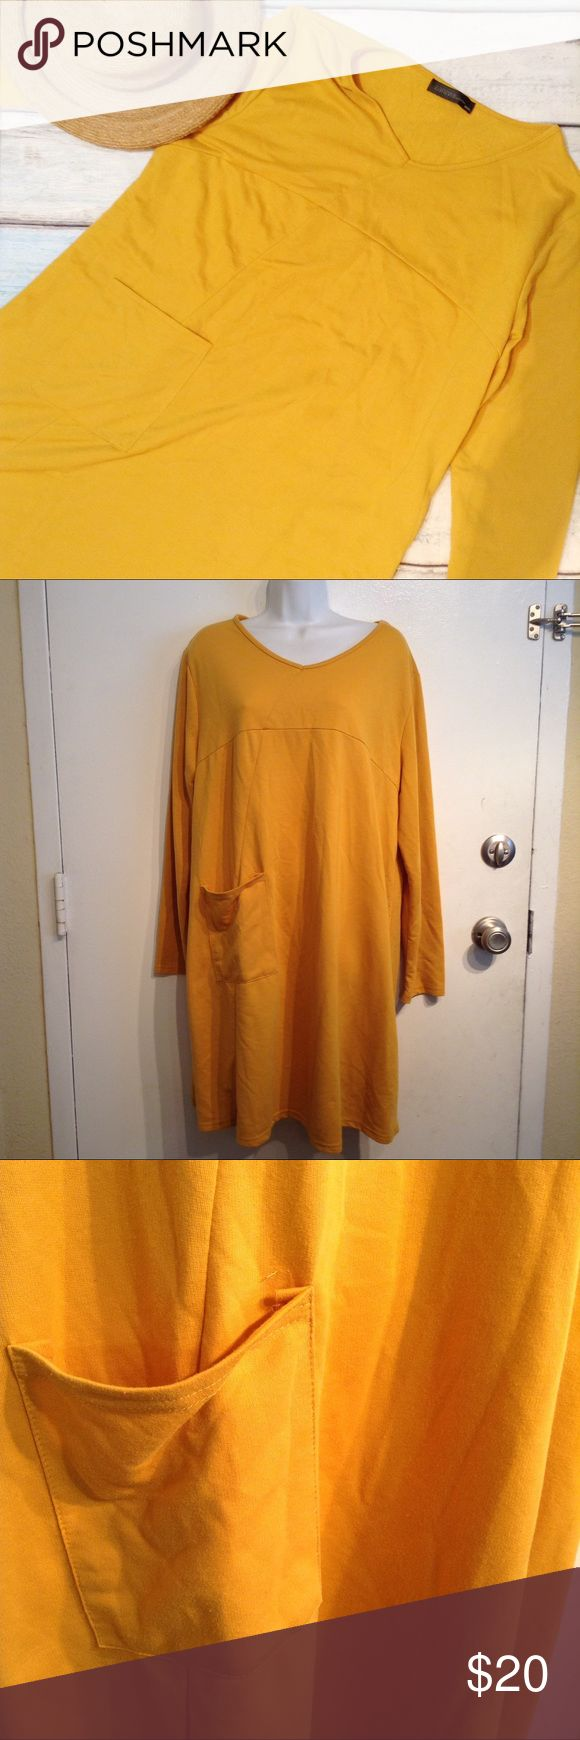 "Plus Size Mustard Yellow Long Sleeve Tunic Dress Plus size mustard yellow v-neck long sleeve dress with pocket. Would be perfect with leggings and boots during the autumn! Size XXXL. Measures 24"" flat from armpit to armpit and 38"" long. Slight stretch. No modeling. Smoke free home. I do discount bundles. Zanzea Collection Dresses Long Sleeve"